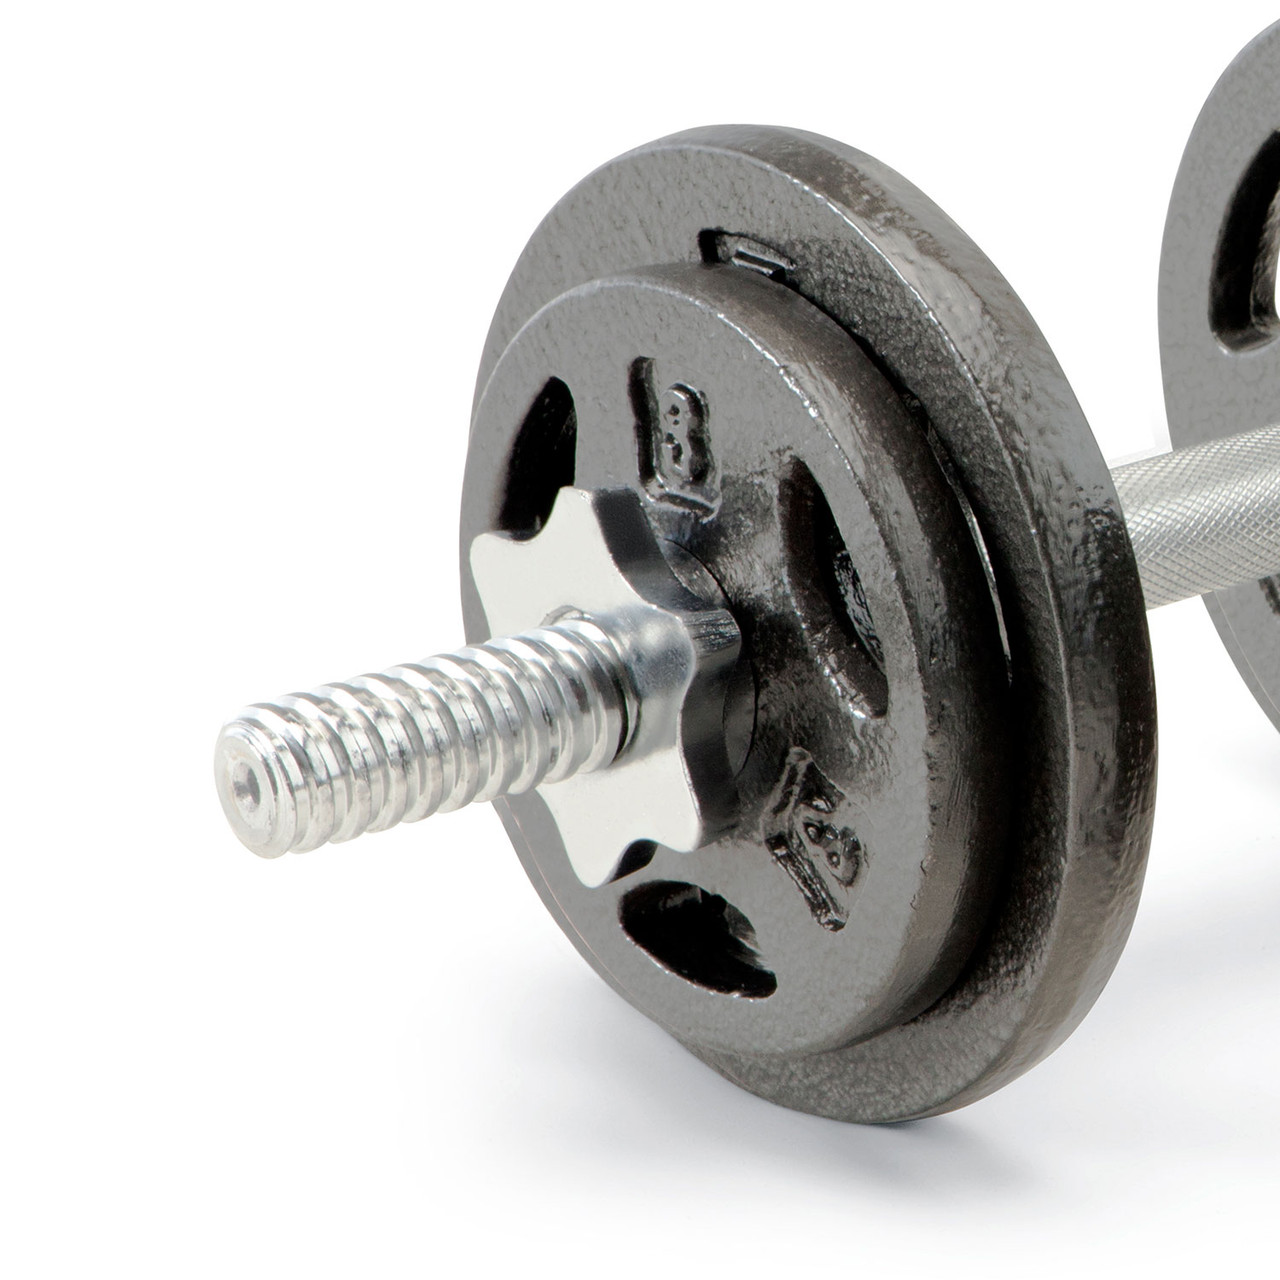 The Marcy Cast Iron Dumbbell set includes spin-lock collars. Add your weight plates to the dumbbell handles and spin the lock on each end to secure your plates.